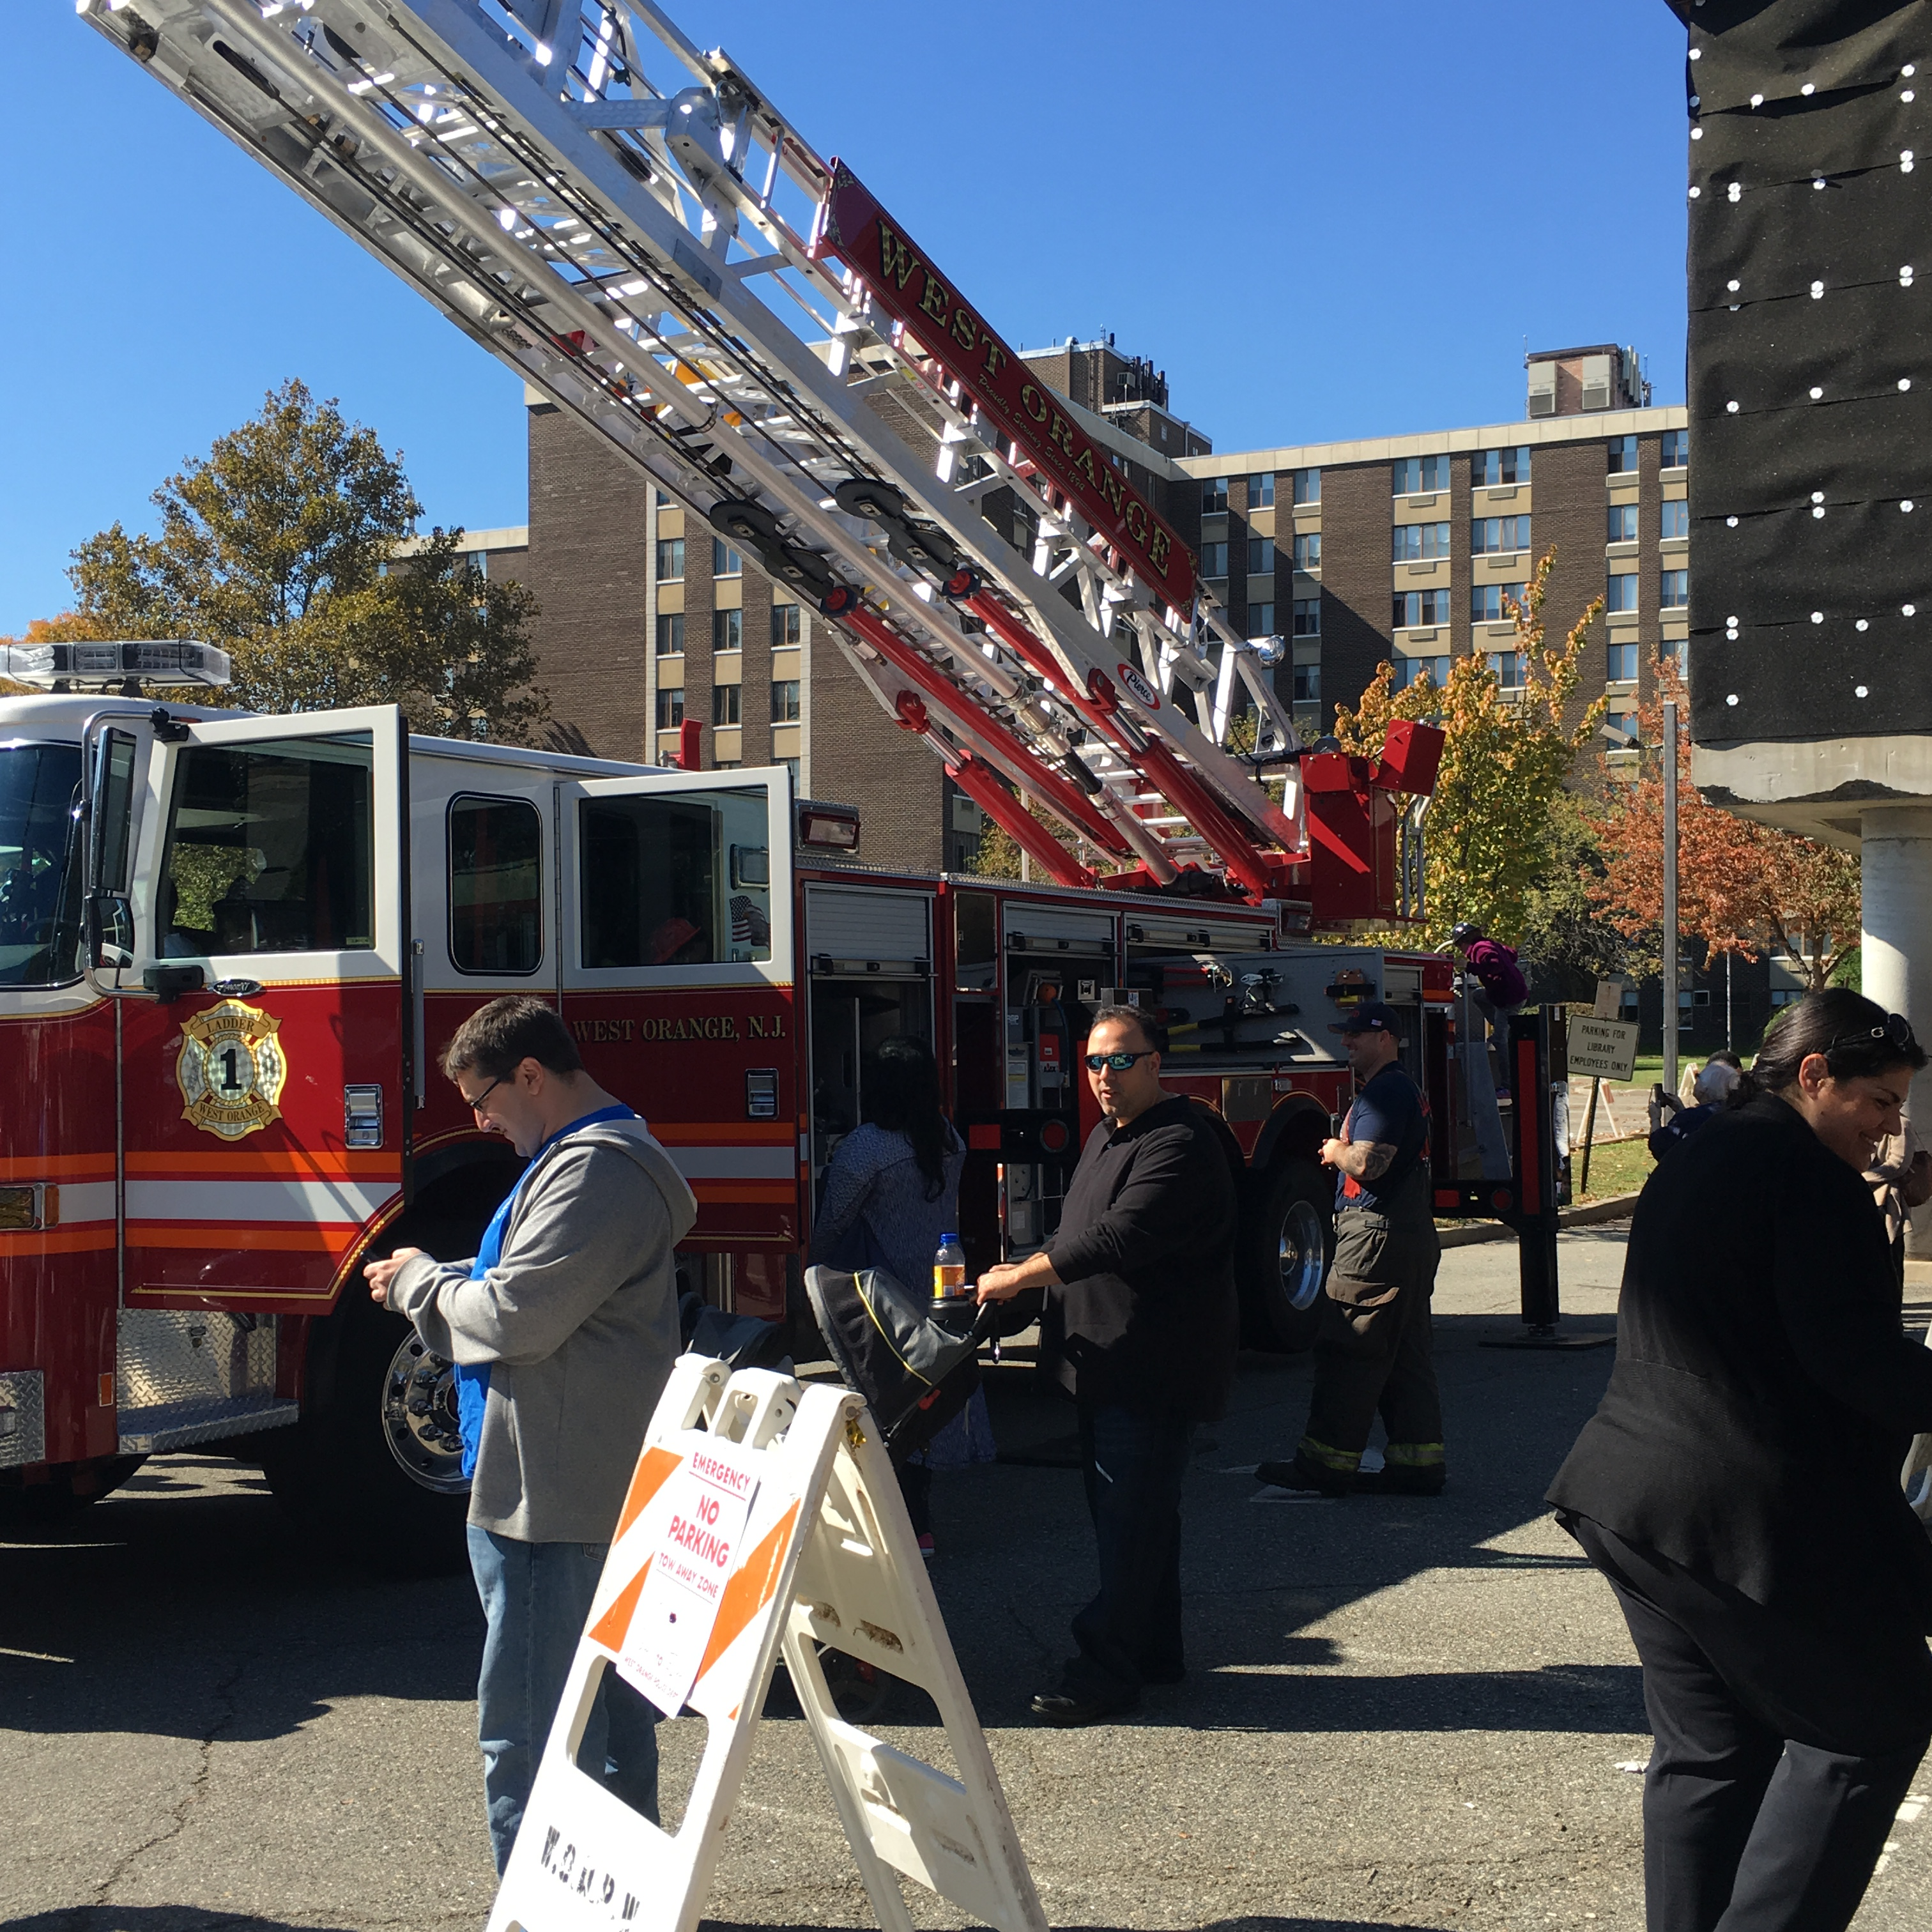 WOFD Fire Prevention Open House 10/15/16